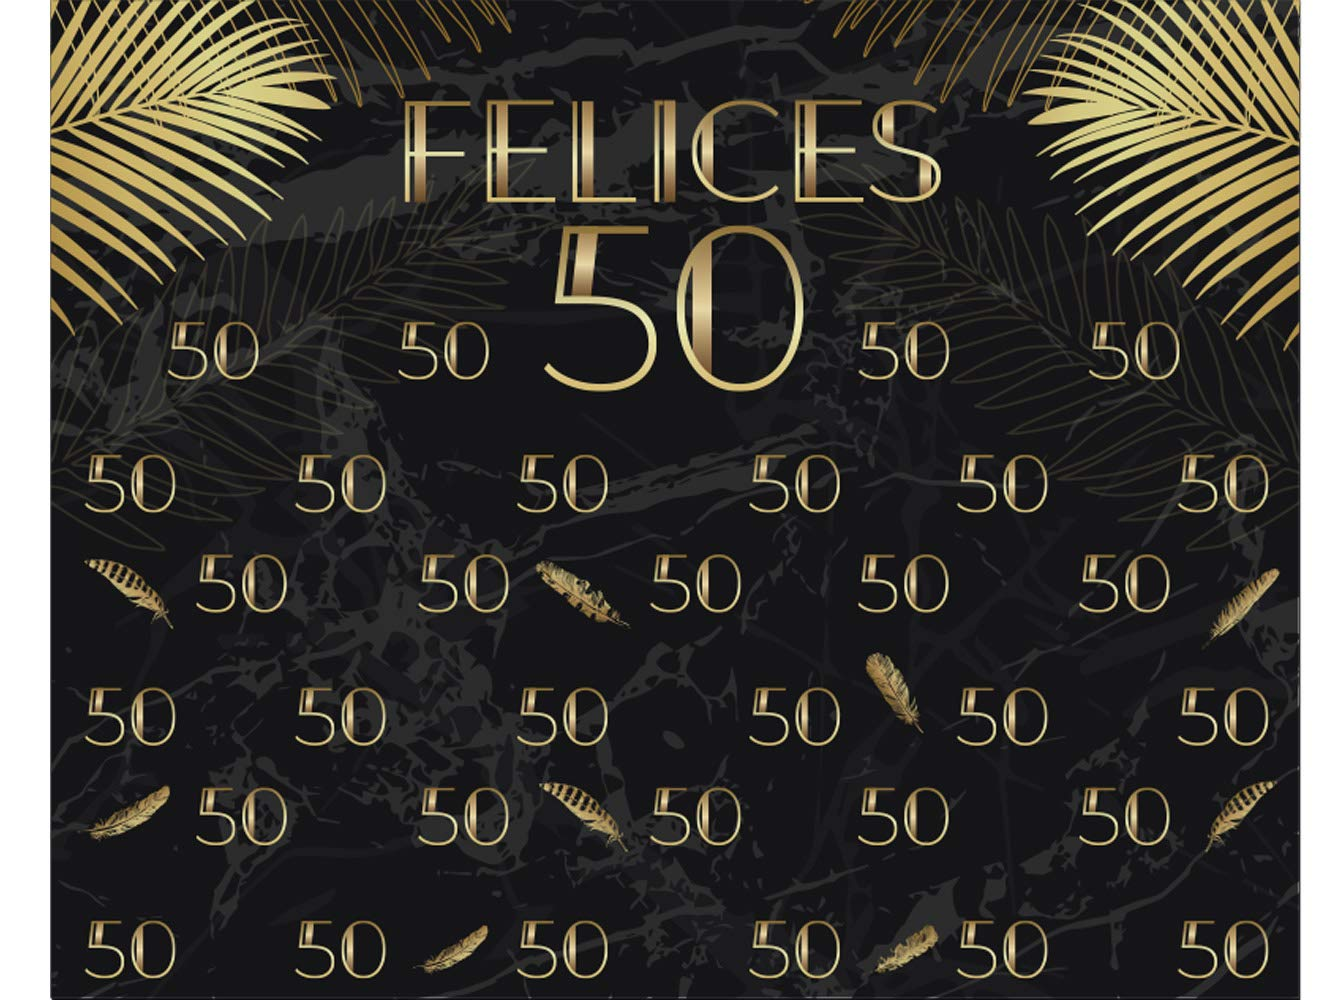 Photocall X-Banner Extensible 100% Felices 50 | 250x200cm ...